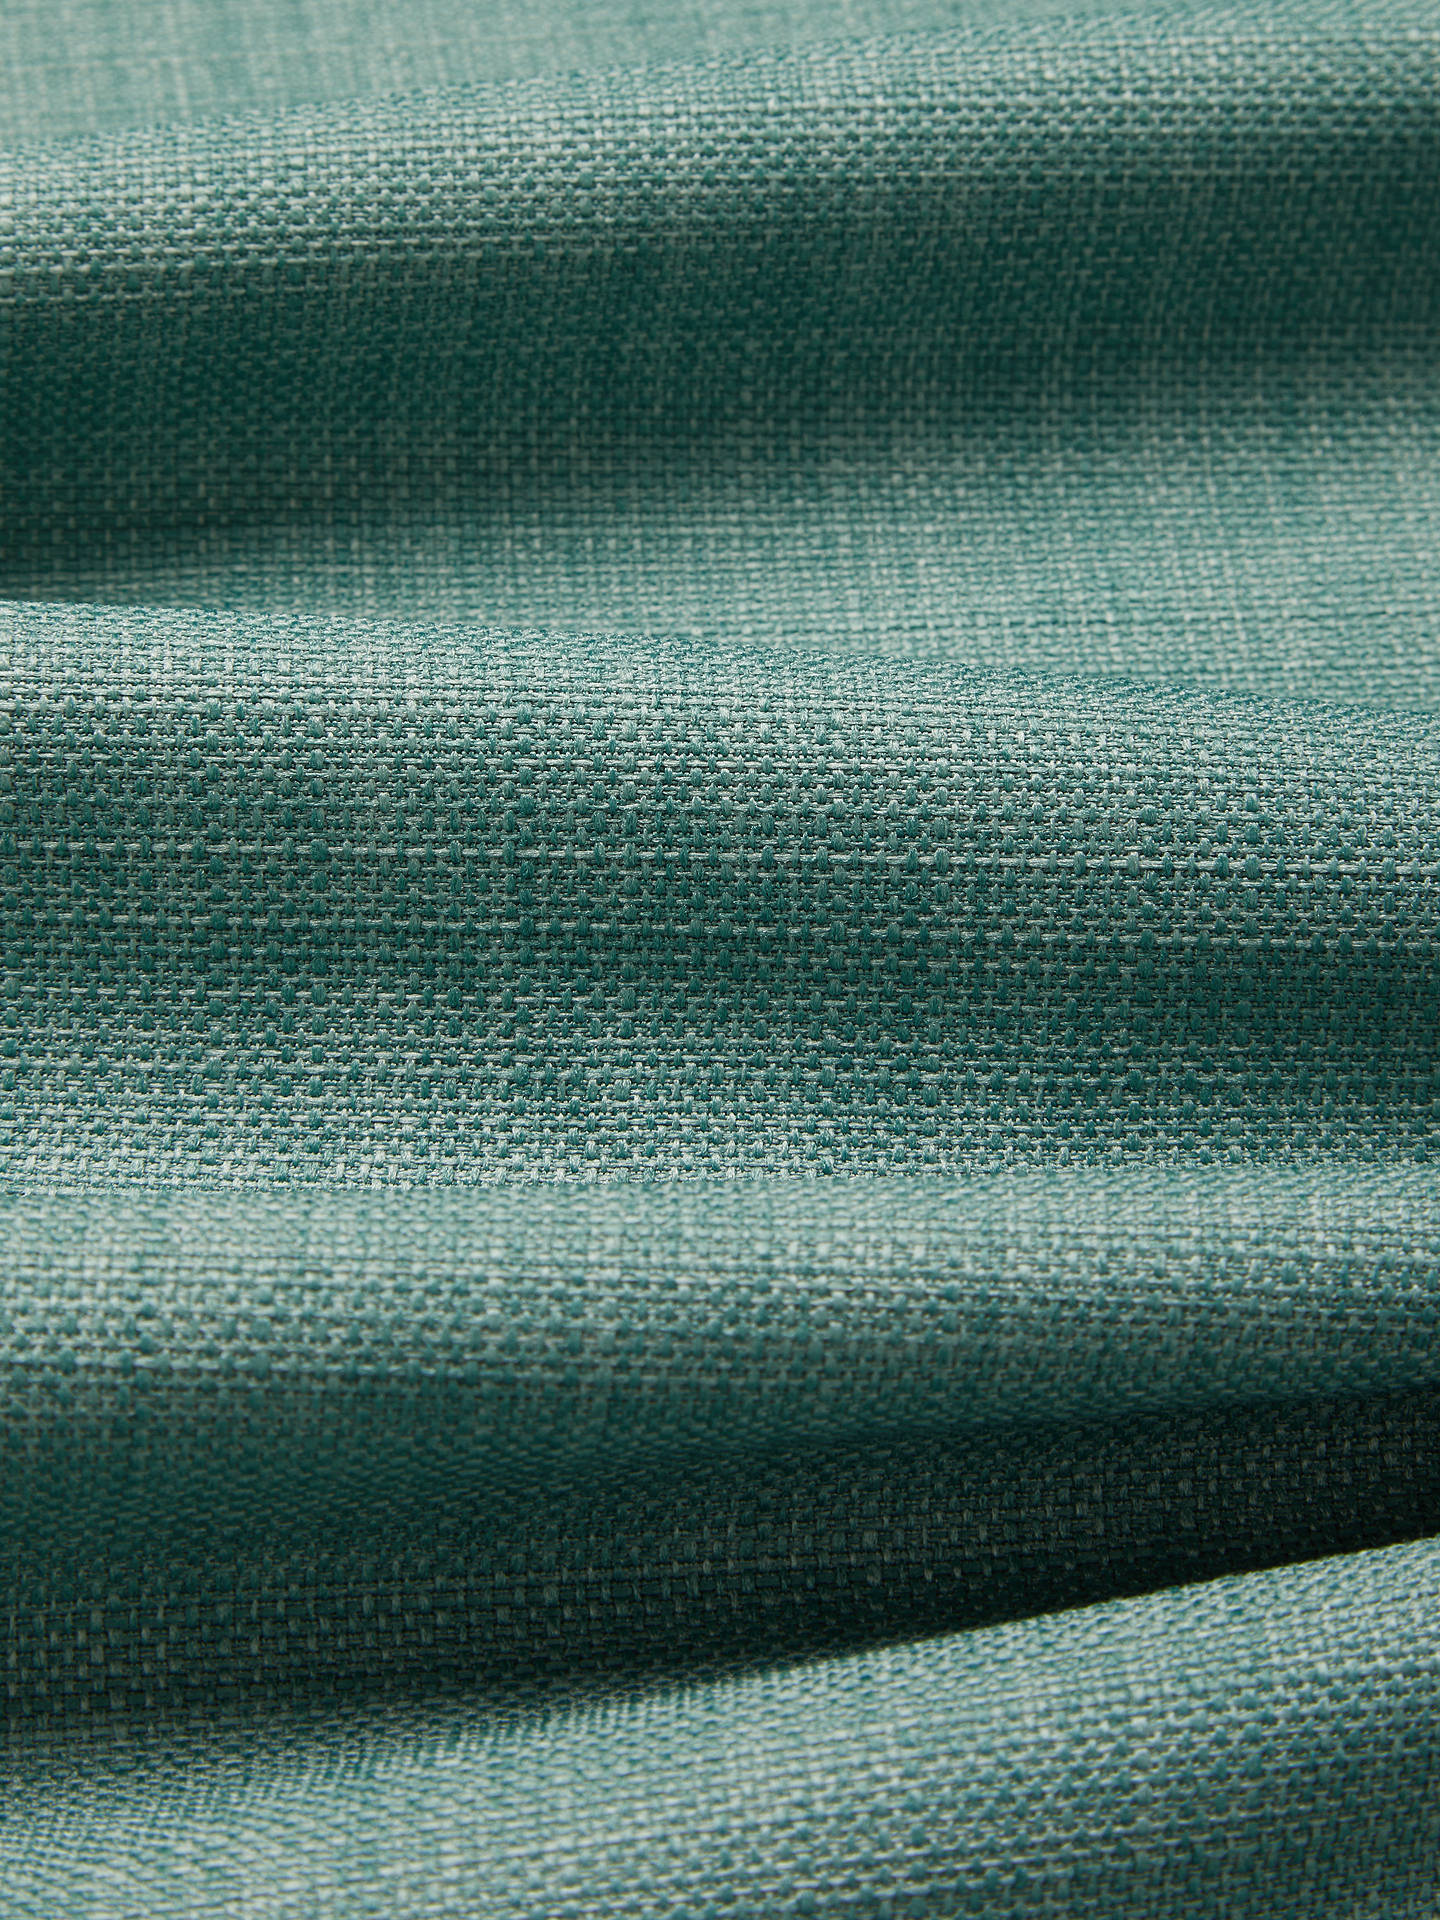 Buy John Lewis & Partners Barathea Pair Lined Eyelet Curtains, Spruce, W117 x Drop 137cm Online at johnlewis.com